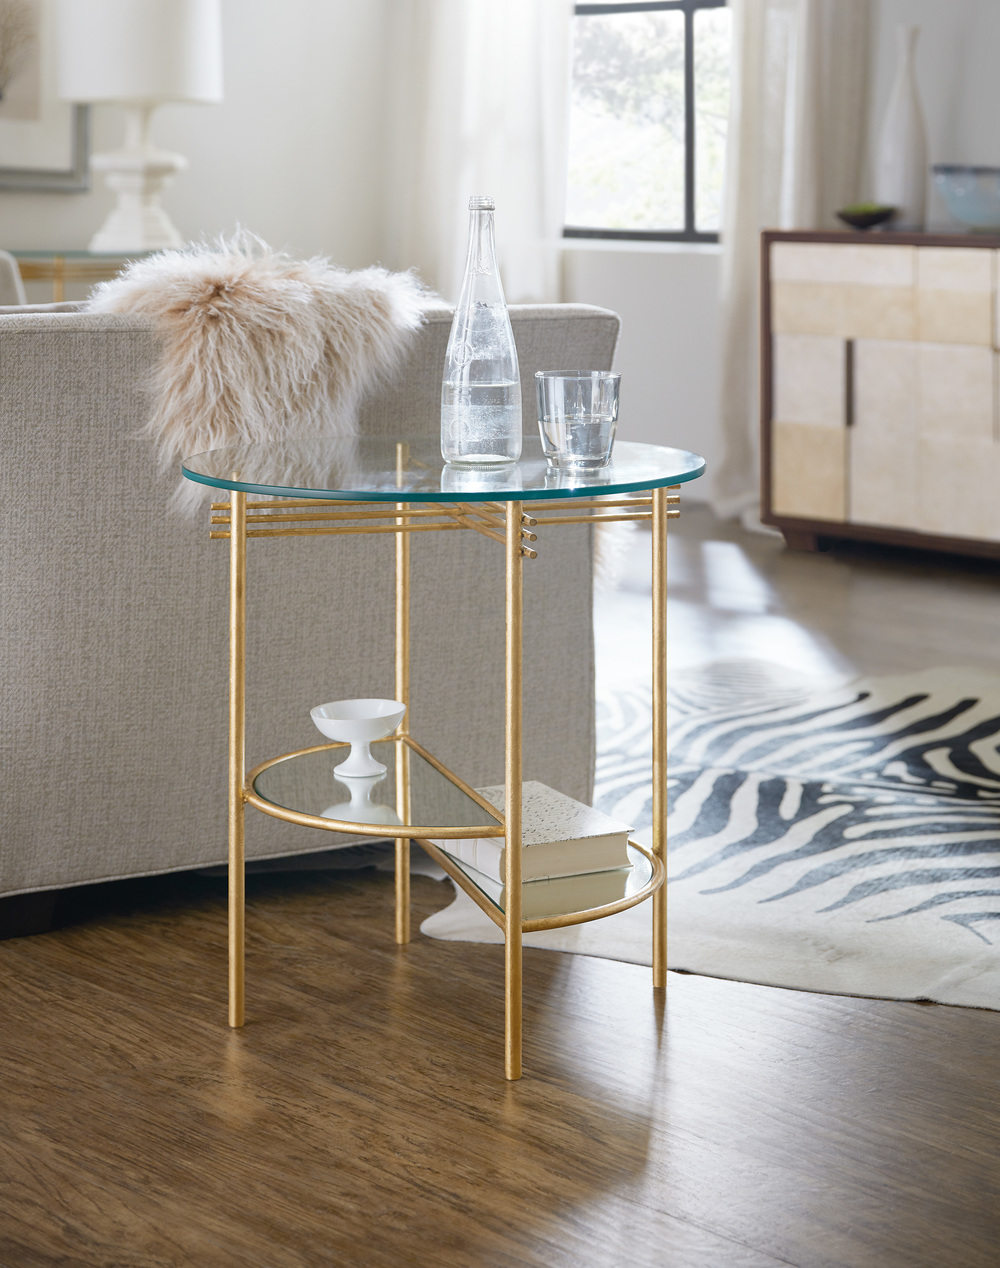 Hooker Furniture - Well Balanced Round End Table